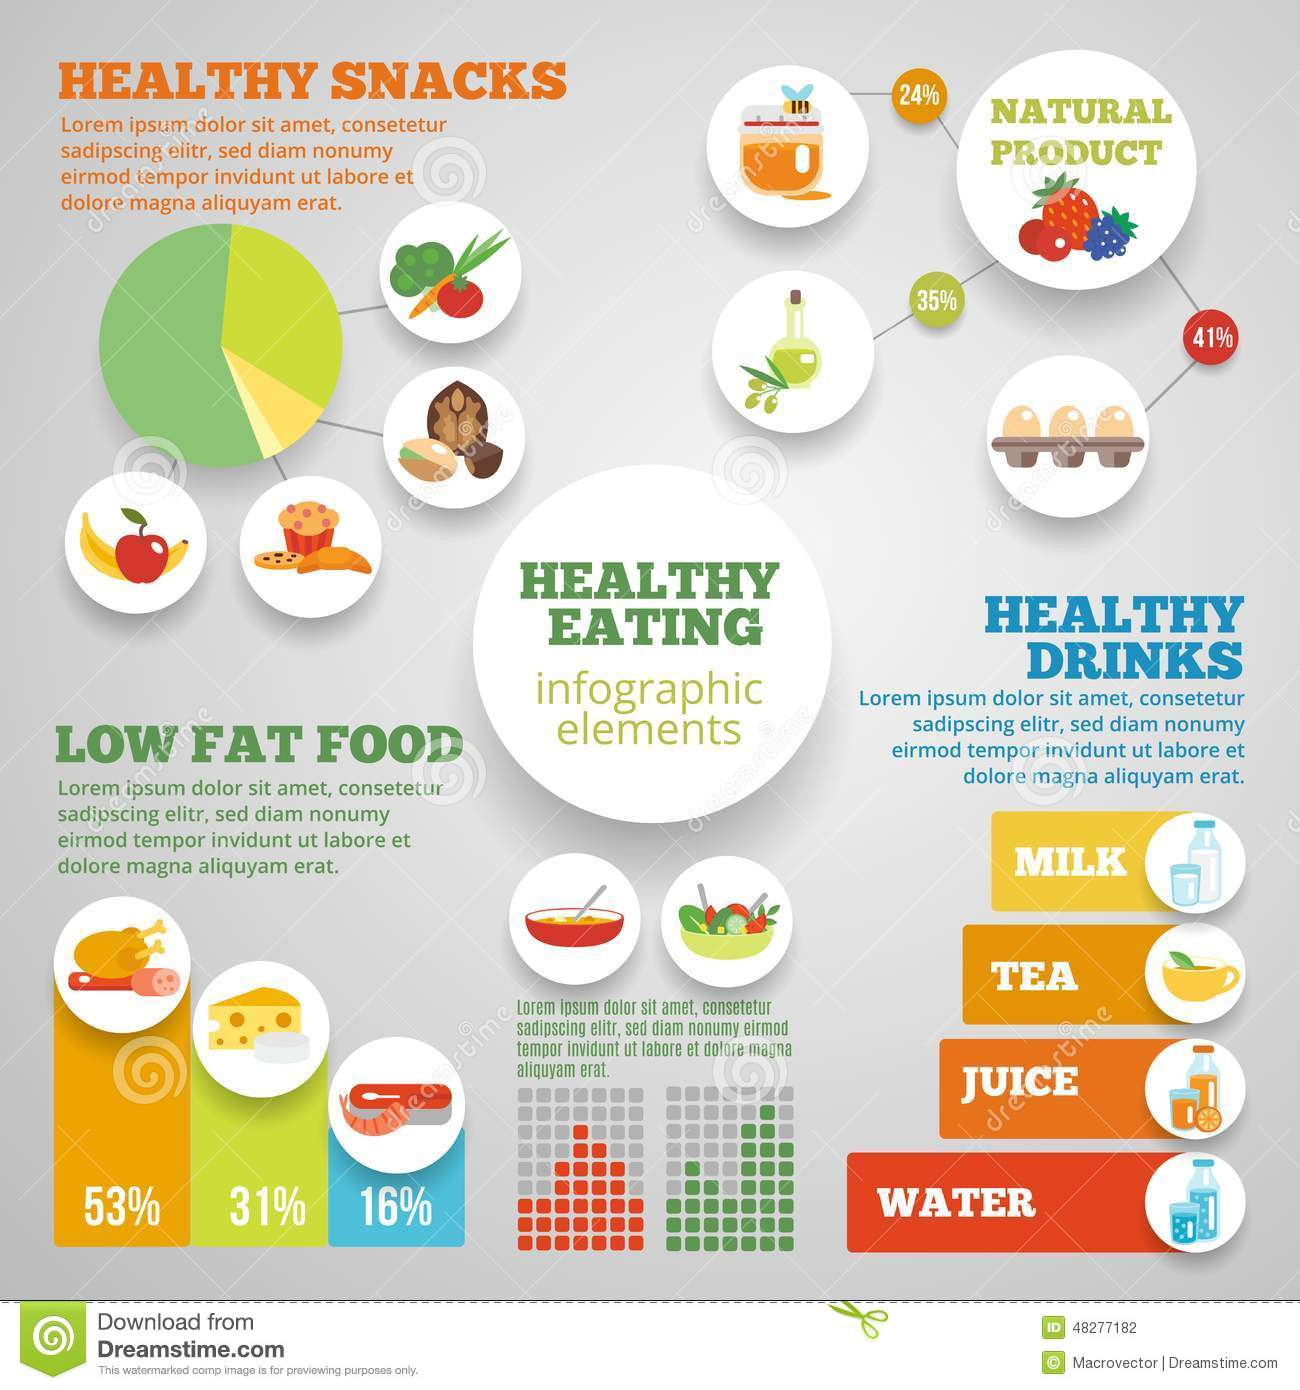 Are Fat Free Foods Healthy